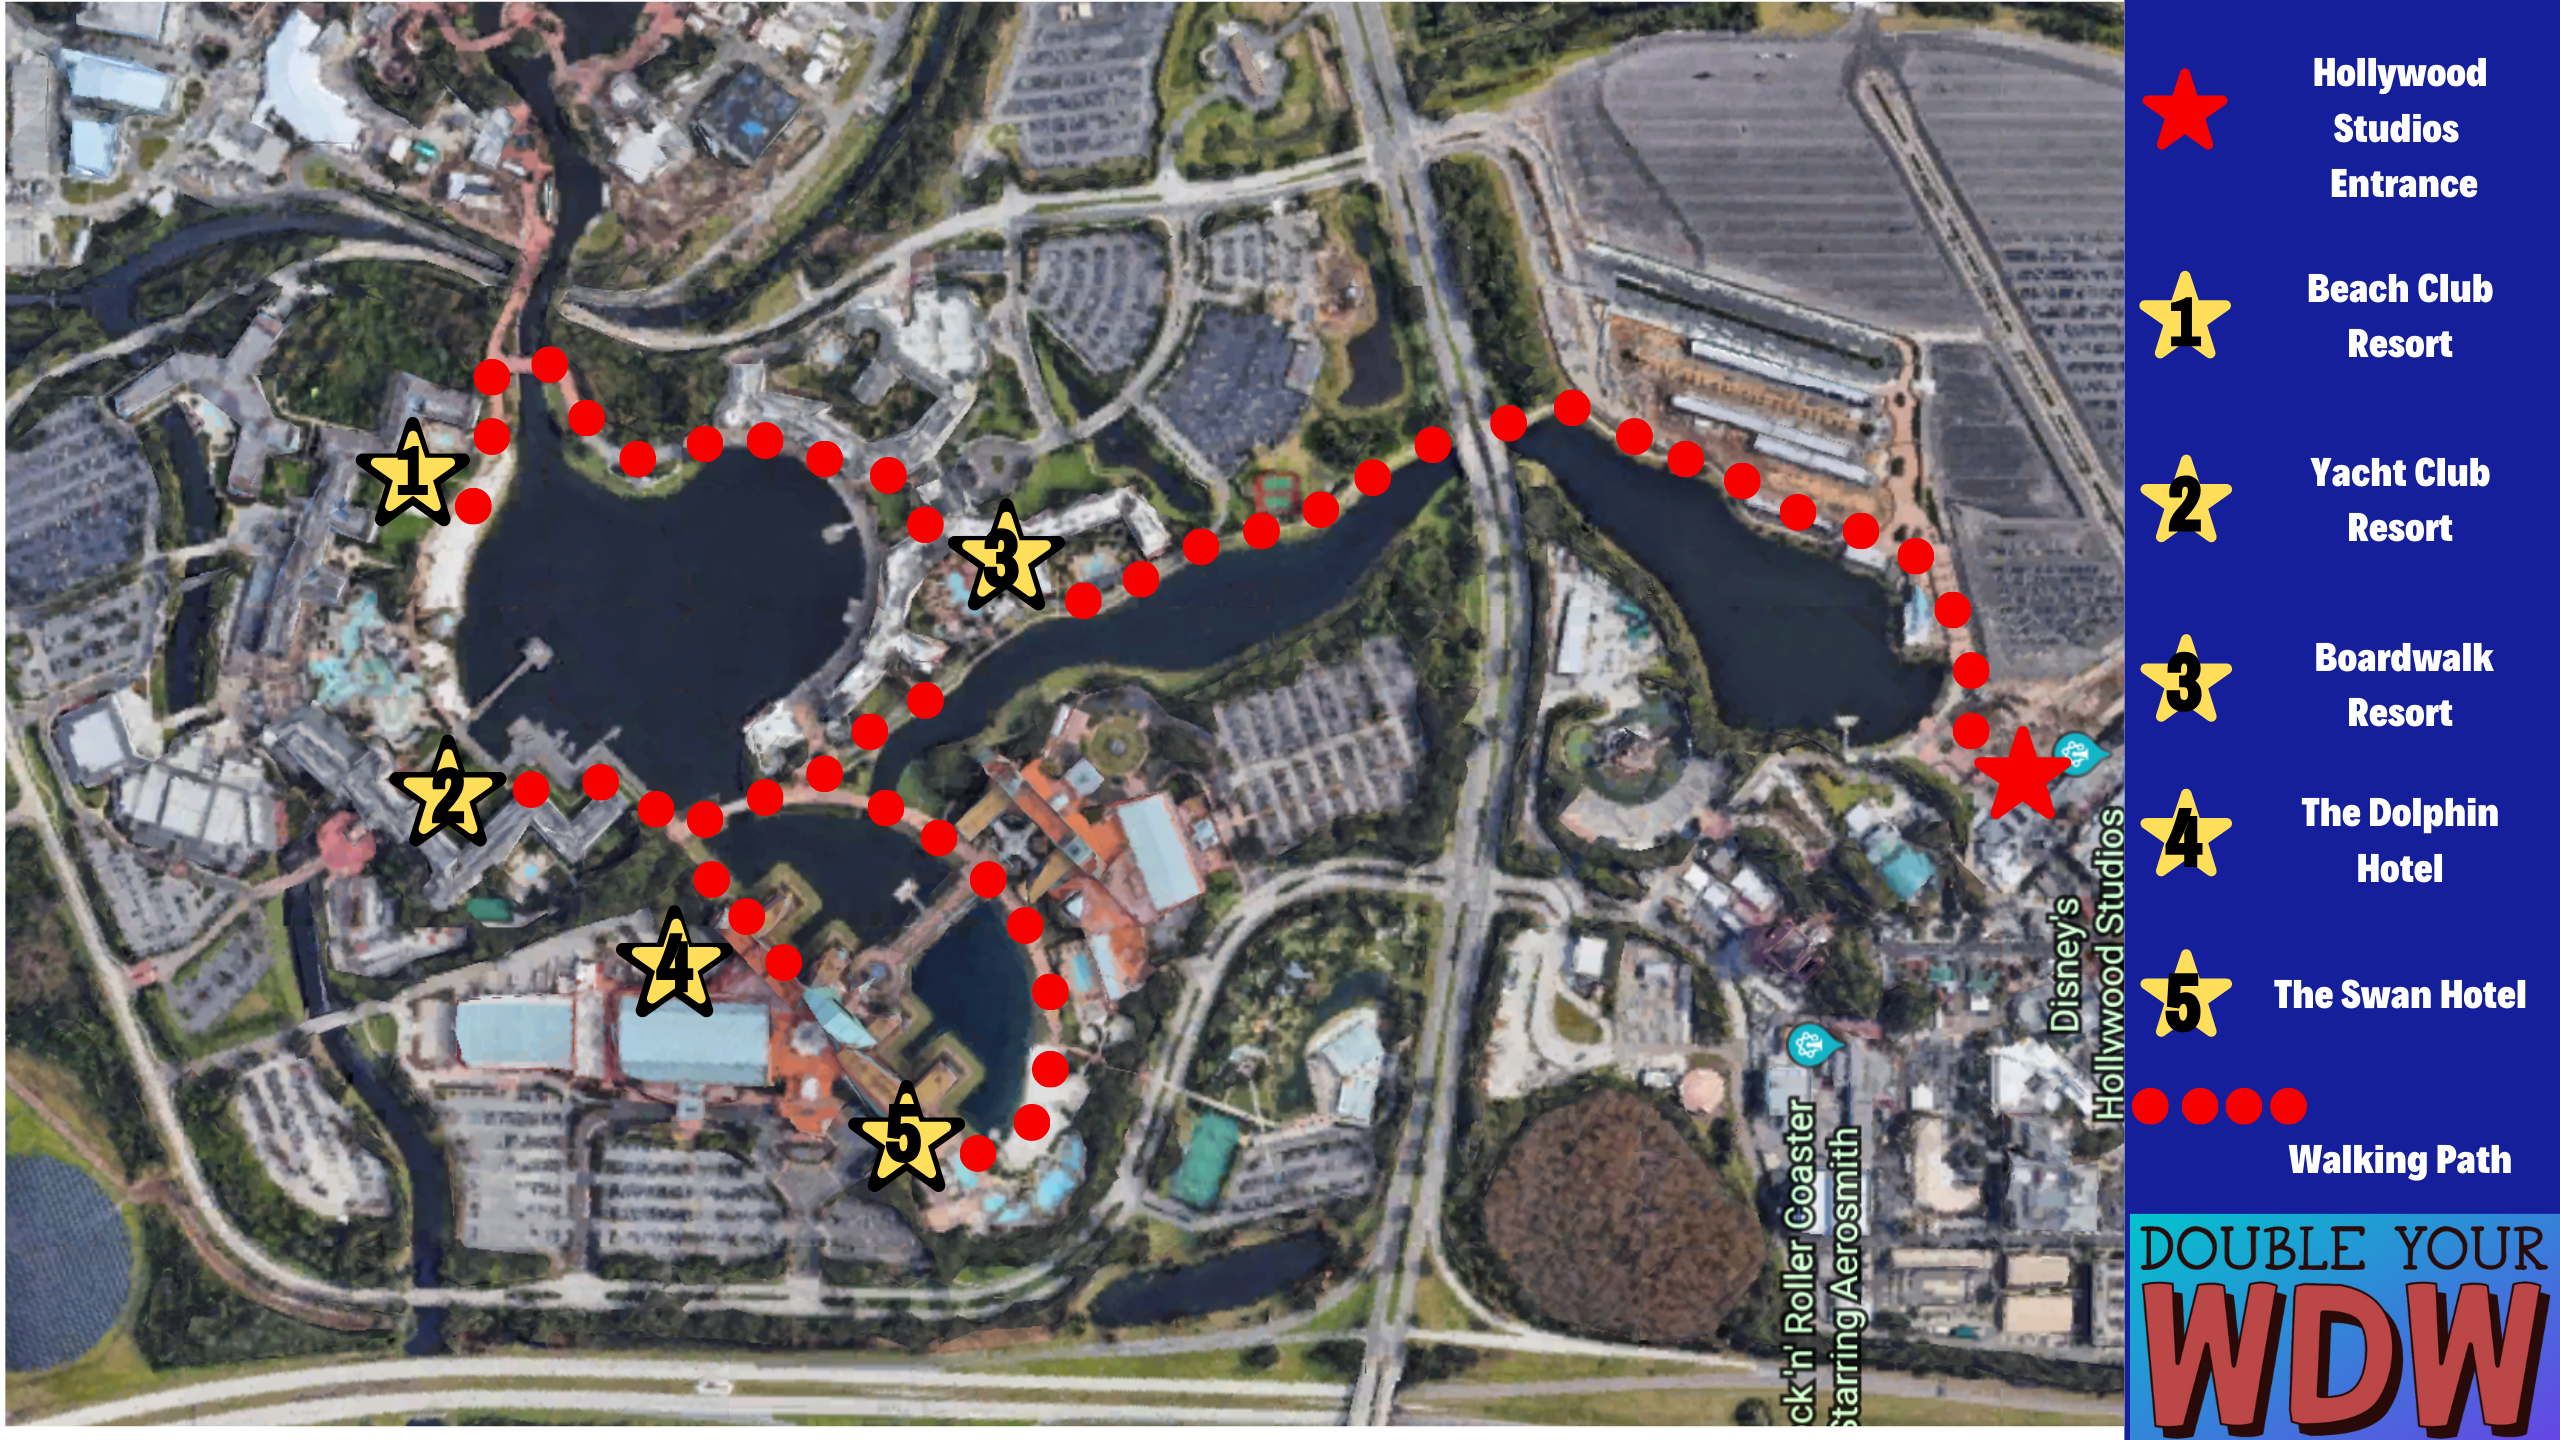 Hollywood Studios walking path from resorts